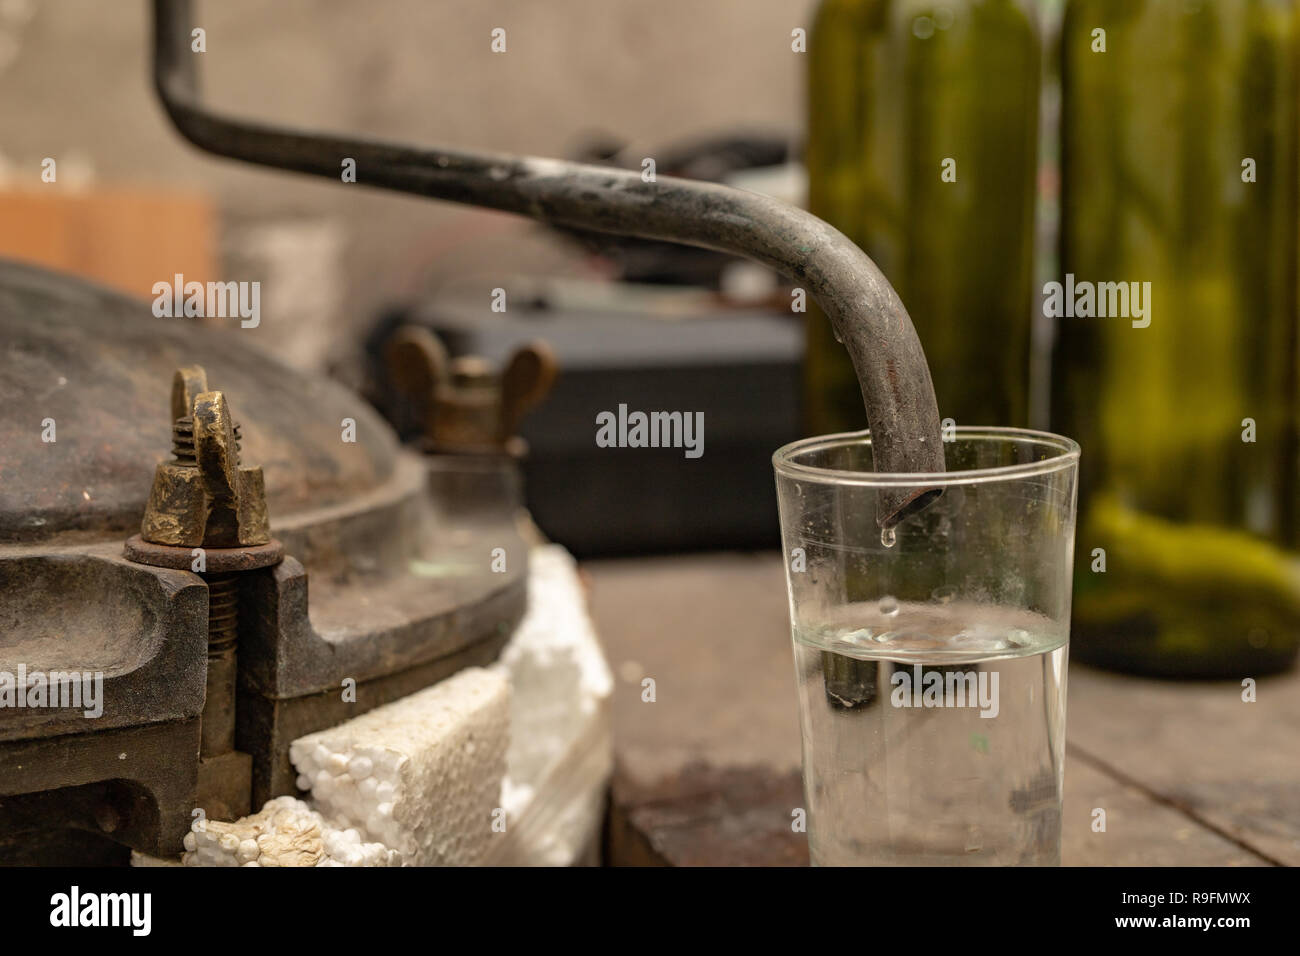 Alcohol production in home conditions. Accessories for the production of homemade moonshine. Place - home basement. - Stock Image